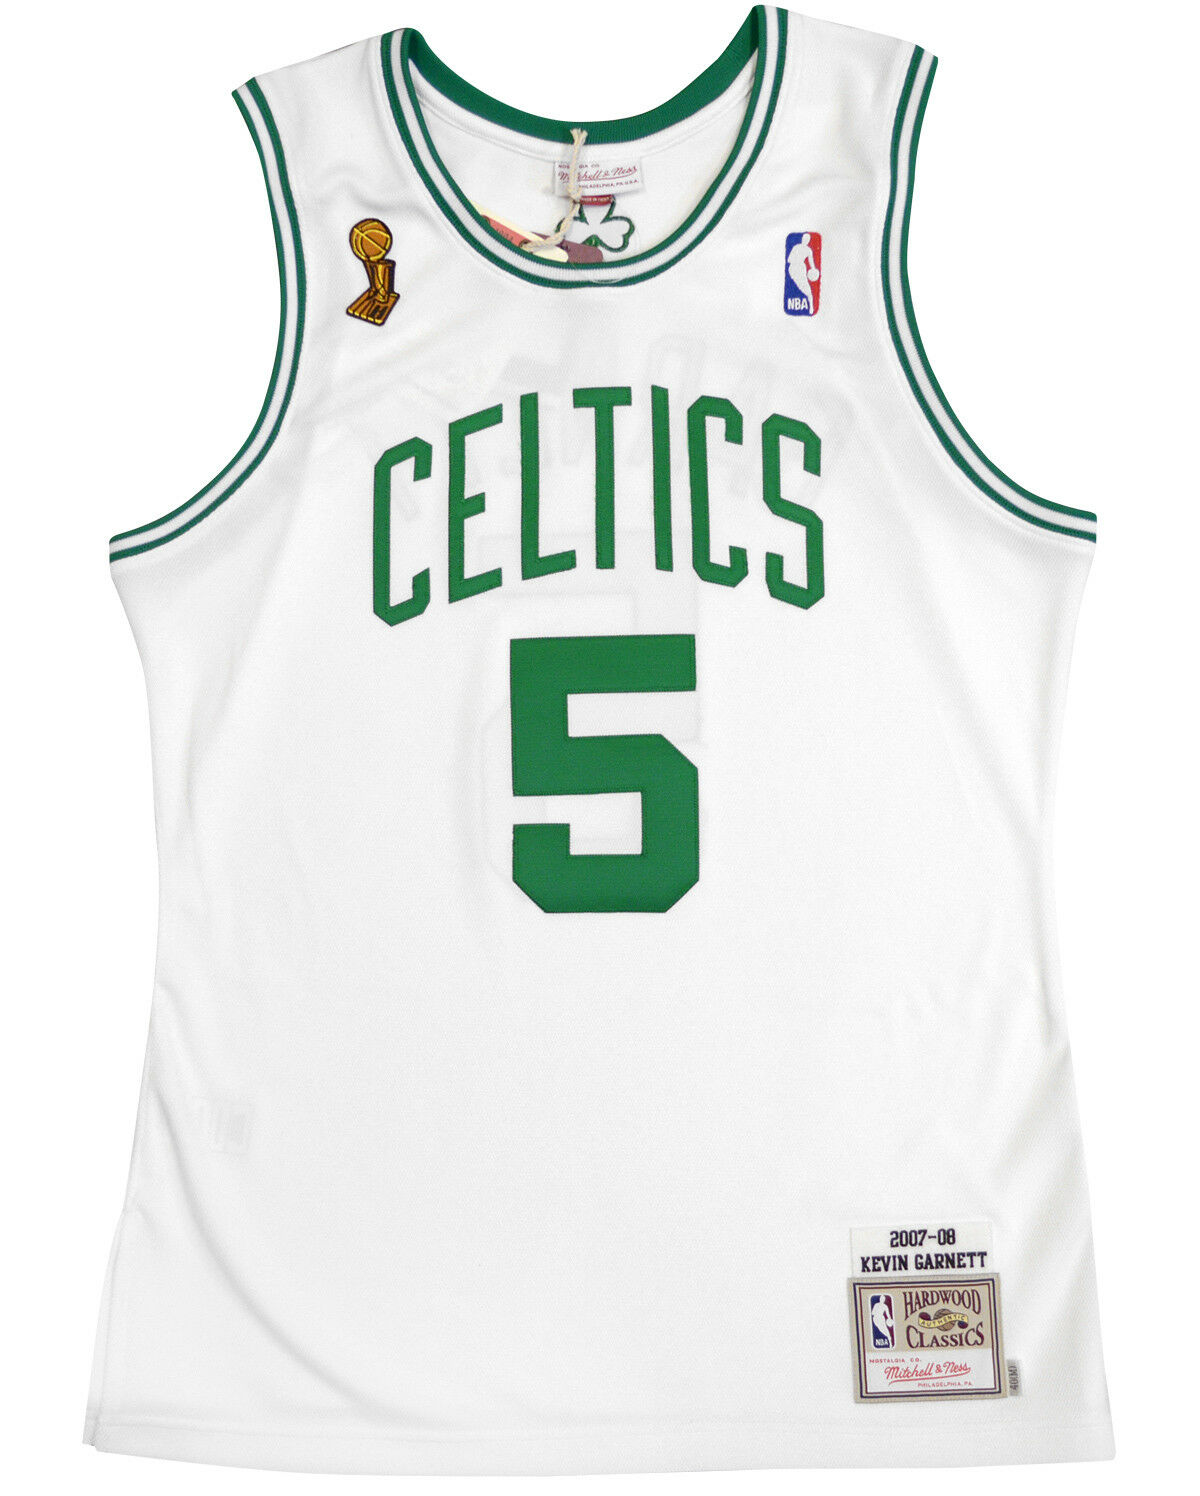 60d70d49fddc Kevin Garnett 2007-08 Boston Celtics Authentic Finals Jersey White ...